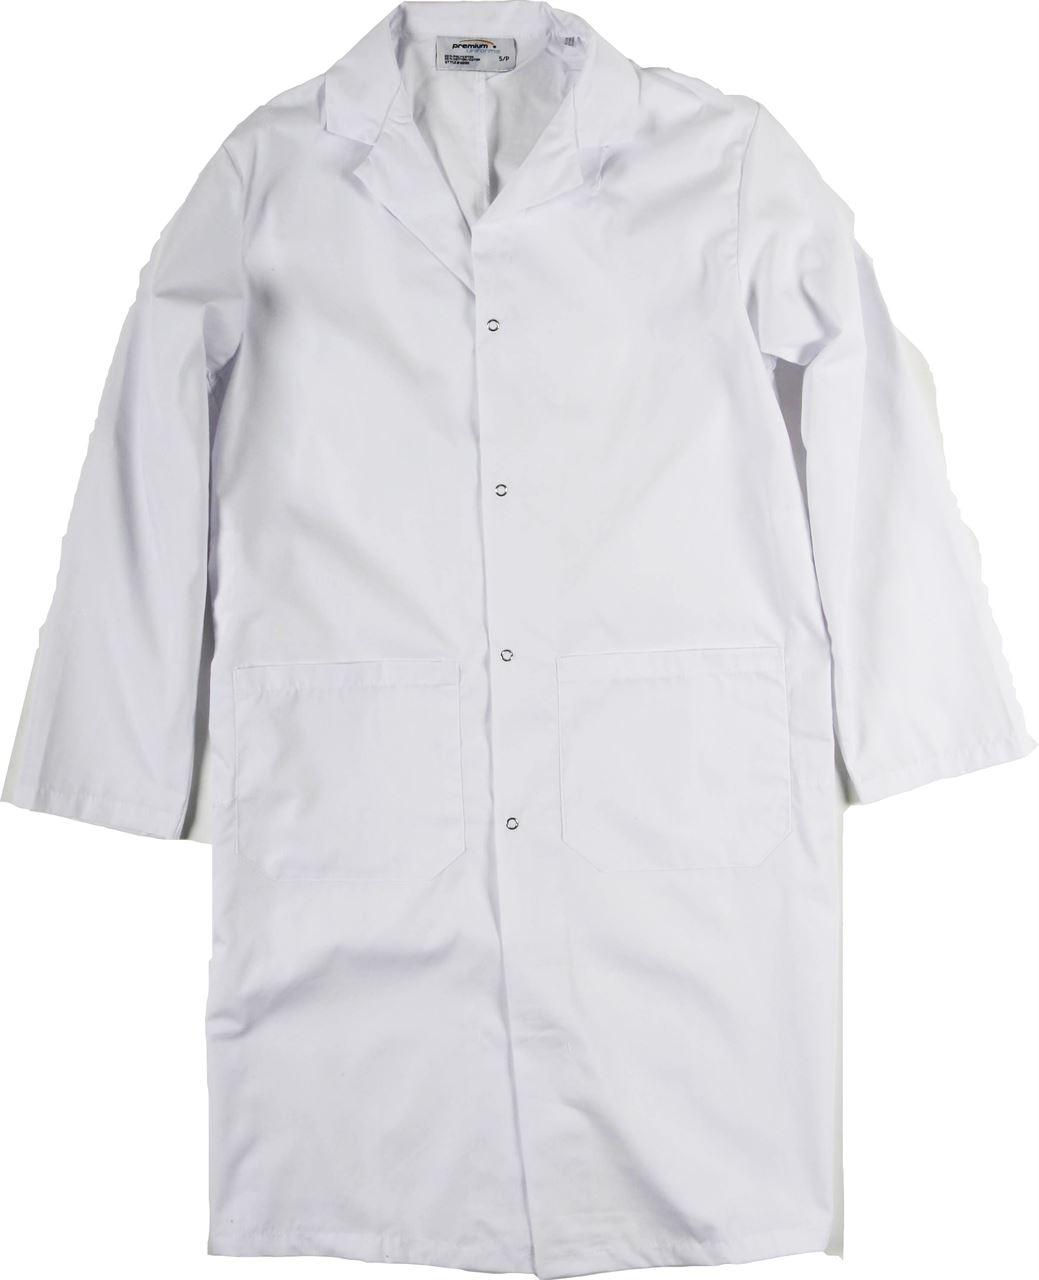 138e5d387b1 Picture of Premium Uniforms Men's Lab Coat With Snap Closure And Lower  Pockets